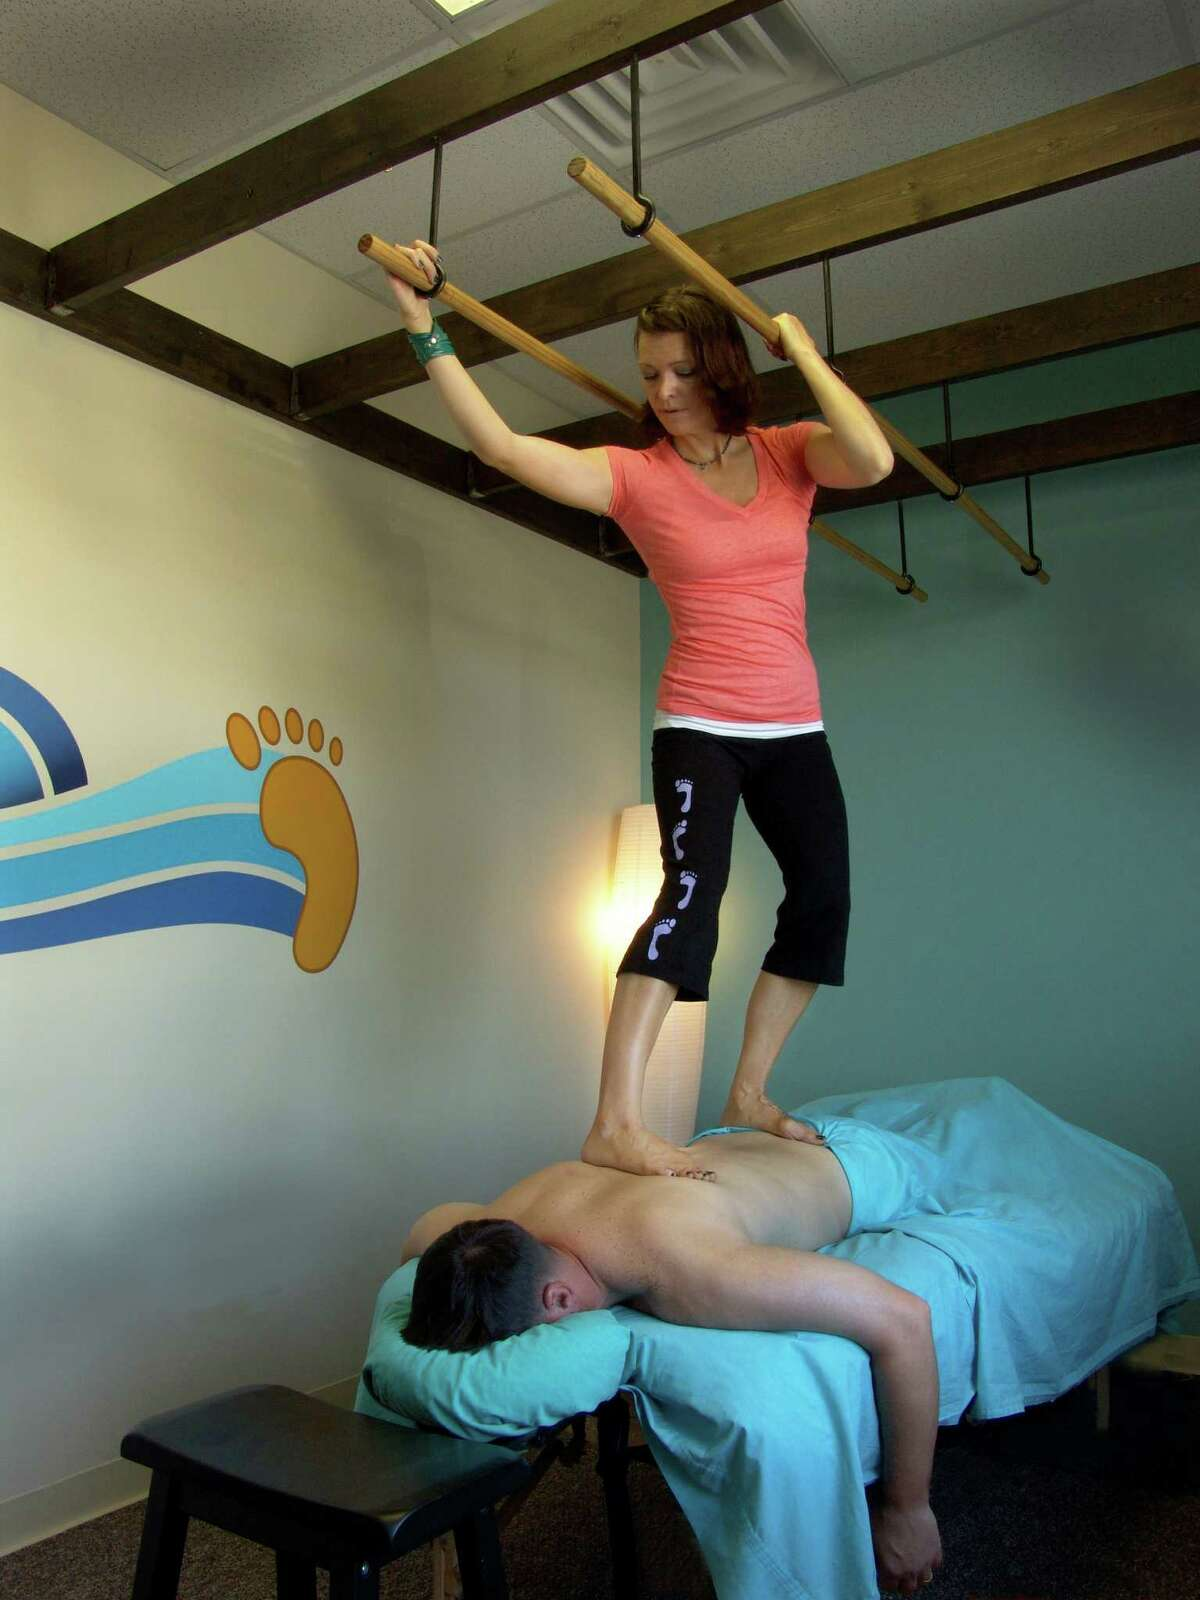 Jeni Spring of Heeling Sole gives an Ashiatsu massage, otherwise known as barefoot massage. Ashiatsu massage therapists use their feet instead of their hands to deliver massage by walking on their clients. Ashiatsu provides a deep-tissue massage, which can help alleviate chronic pain.